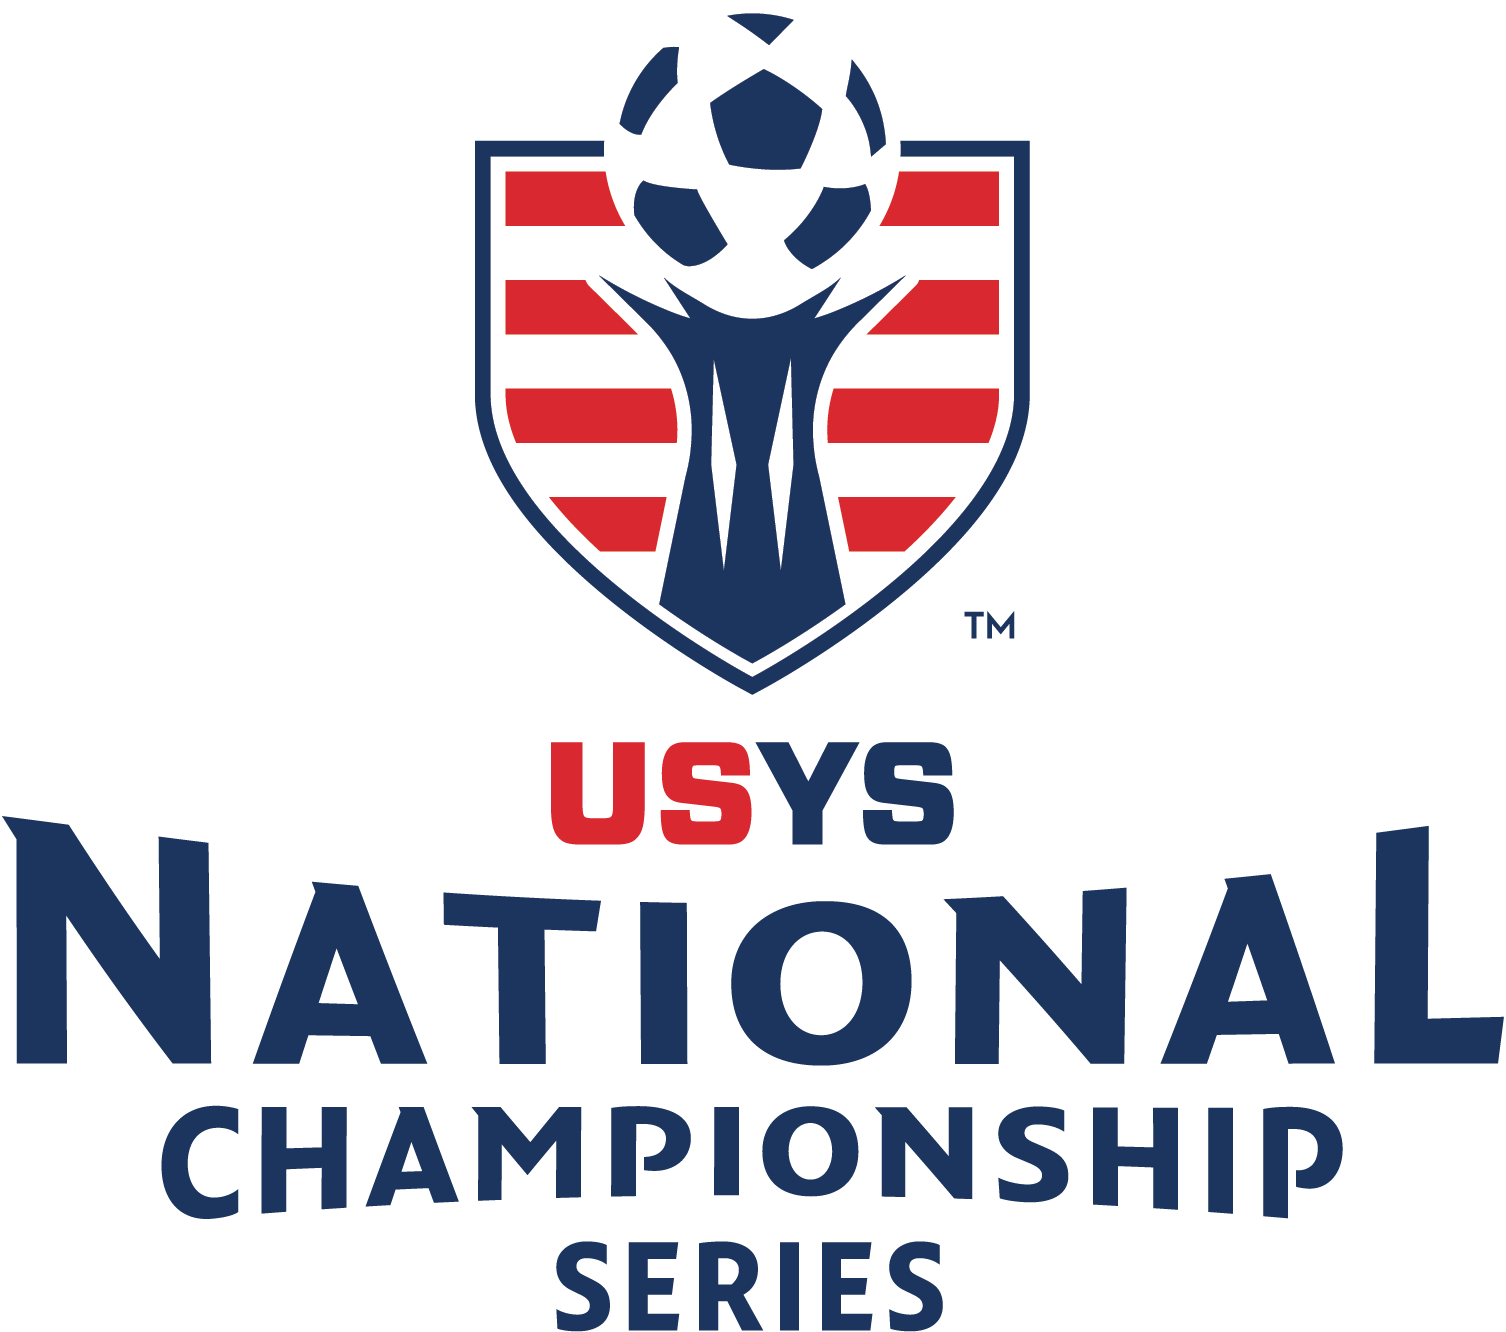 National Chapmionship Series logo